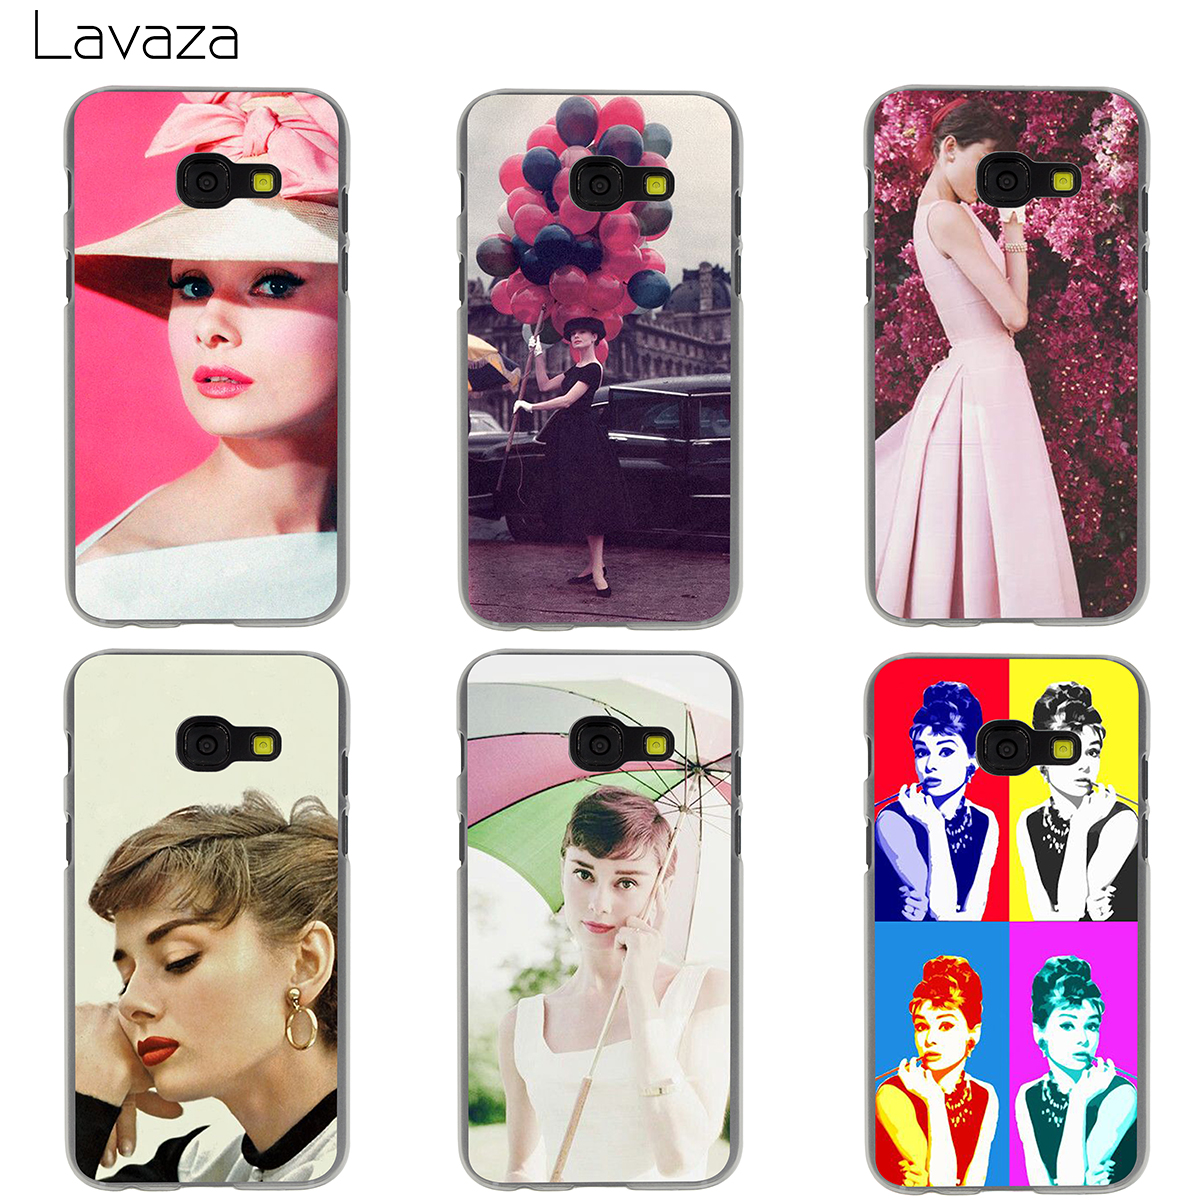 Lavaza Attack On the Giants Audrey Hepburn Bangtan Boys BTS Cat Case for Samsung Galaxy Note 8 A3 A5 A8 J3 J5 J7 2016 2017 2018